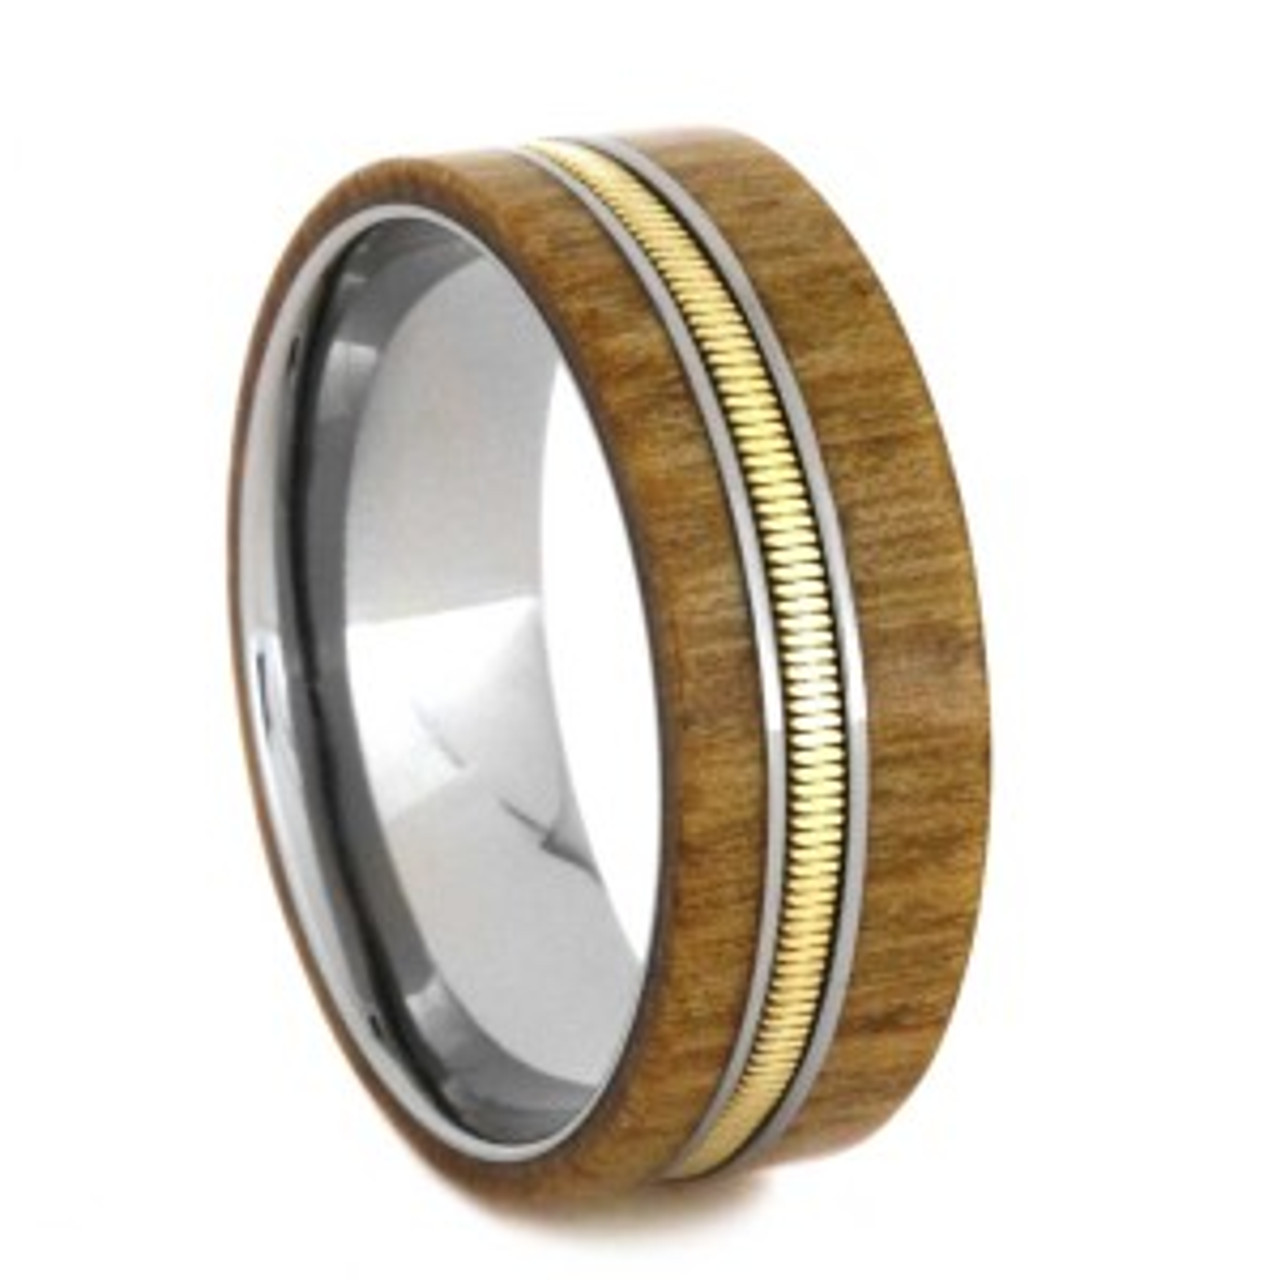 8mm tungsten carbide with 6mm hawaiian koa wood inlay k121m 8 mm unique mens wedding bands wood inlayguitar string gs806m junglespirit Choice Image